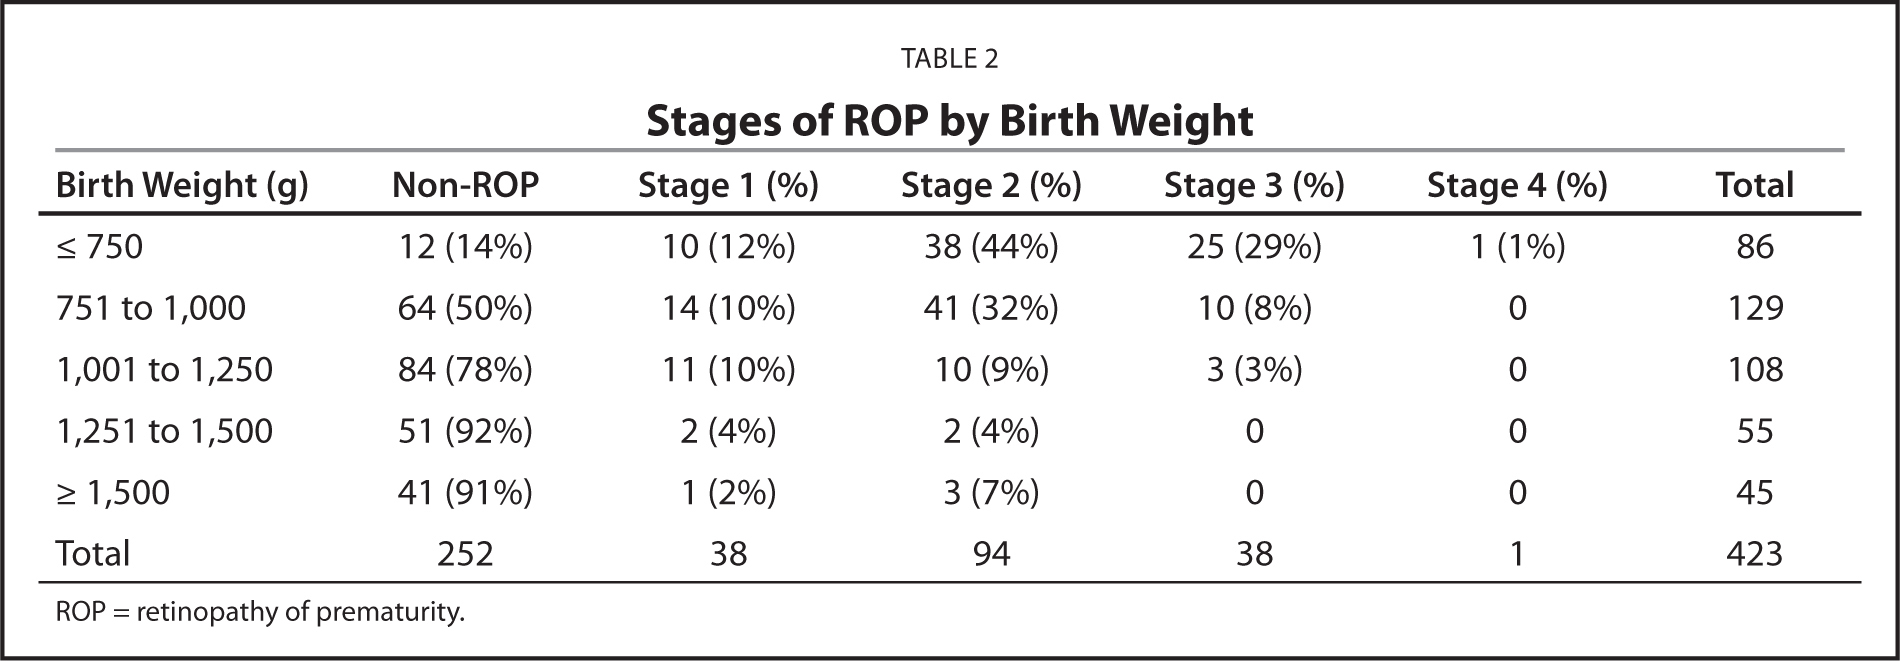 Stages of ROP by Birth Weight